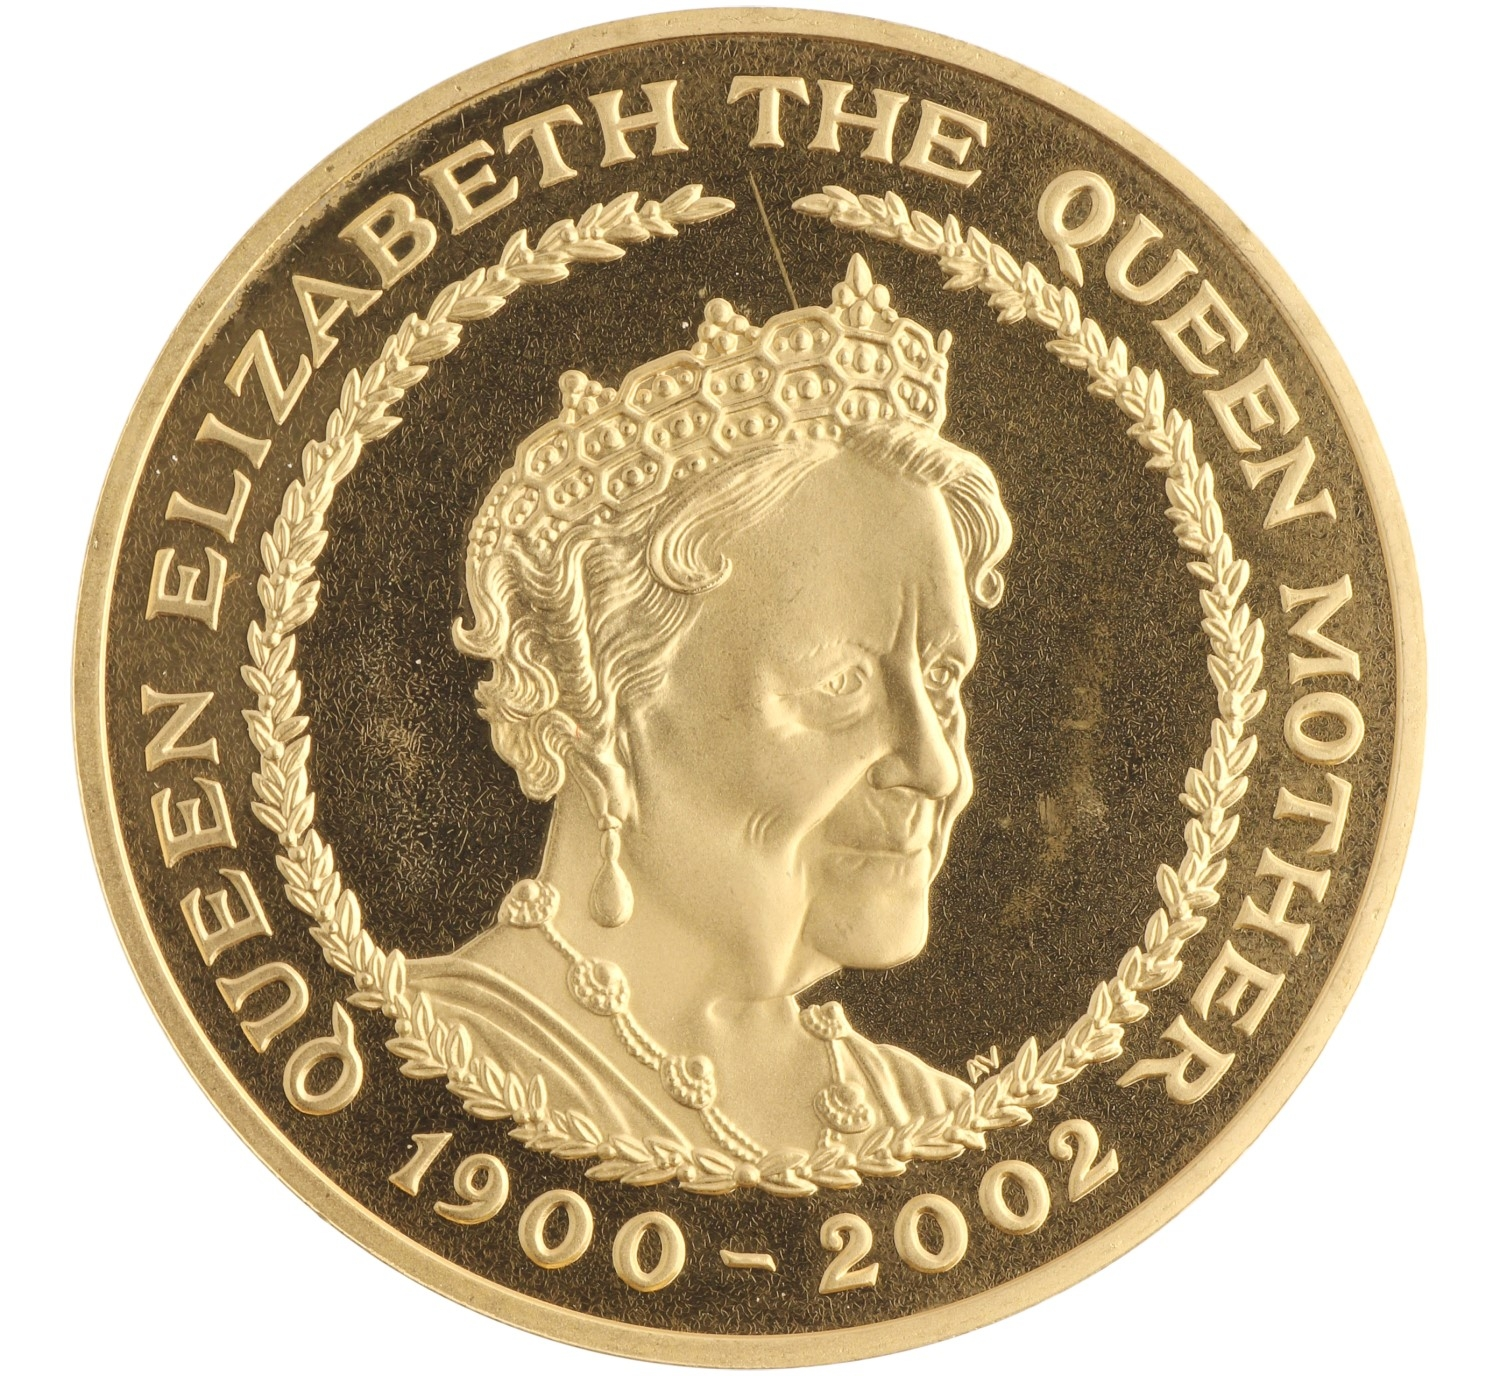 5 Pounds - Great Britain - 2002